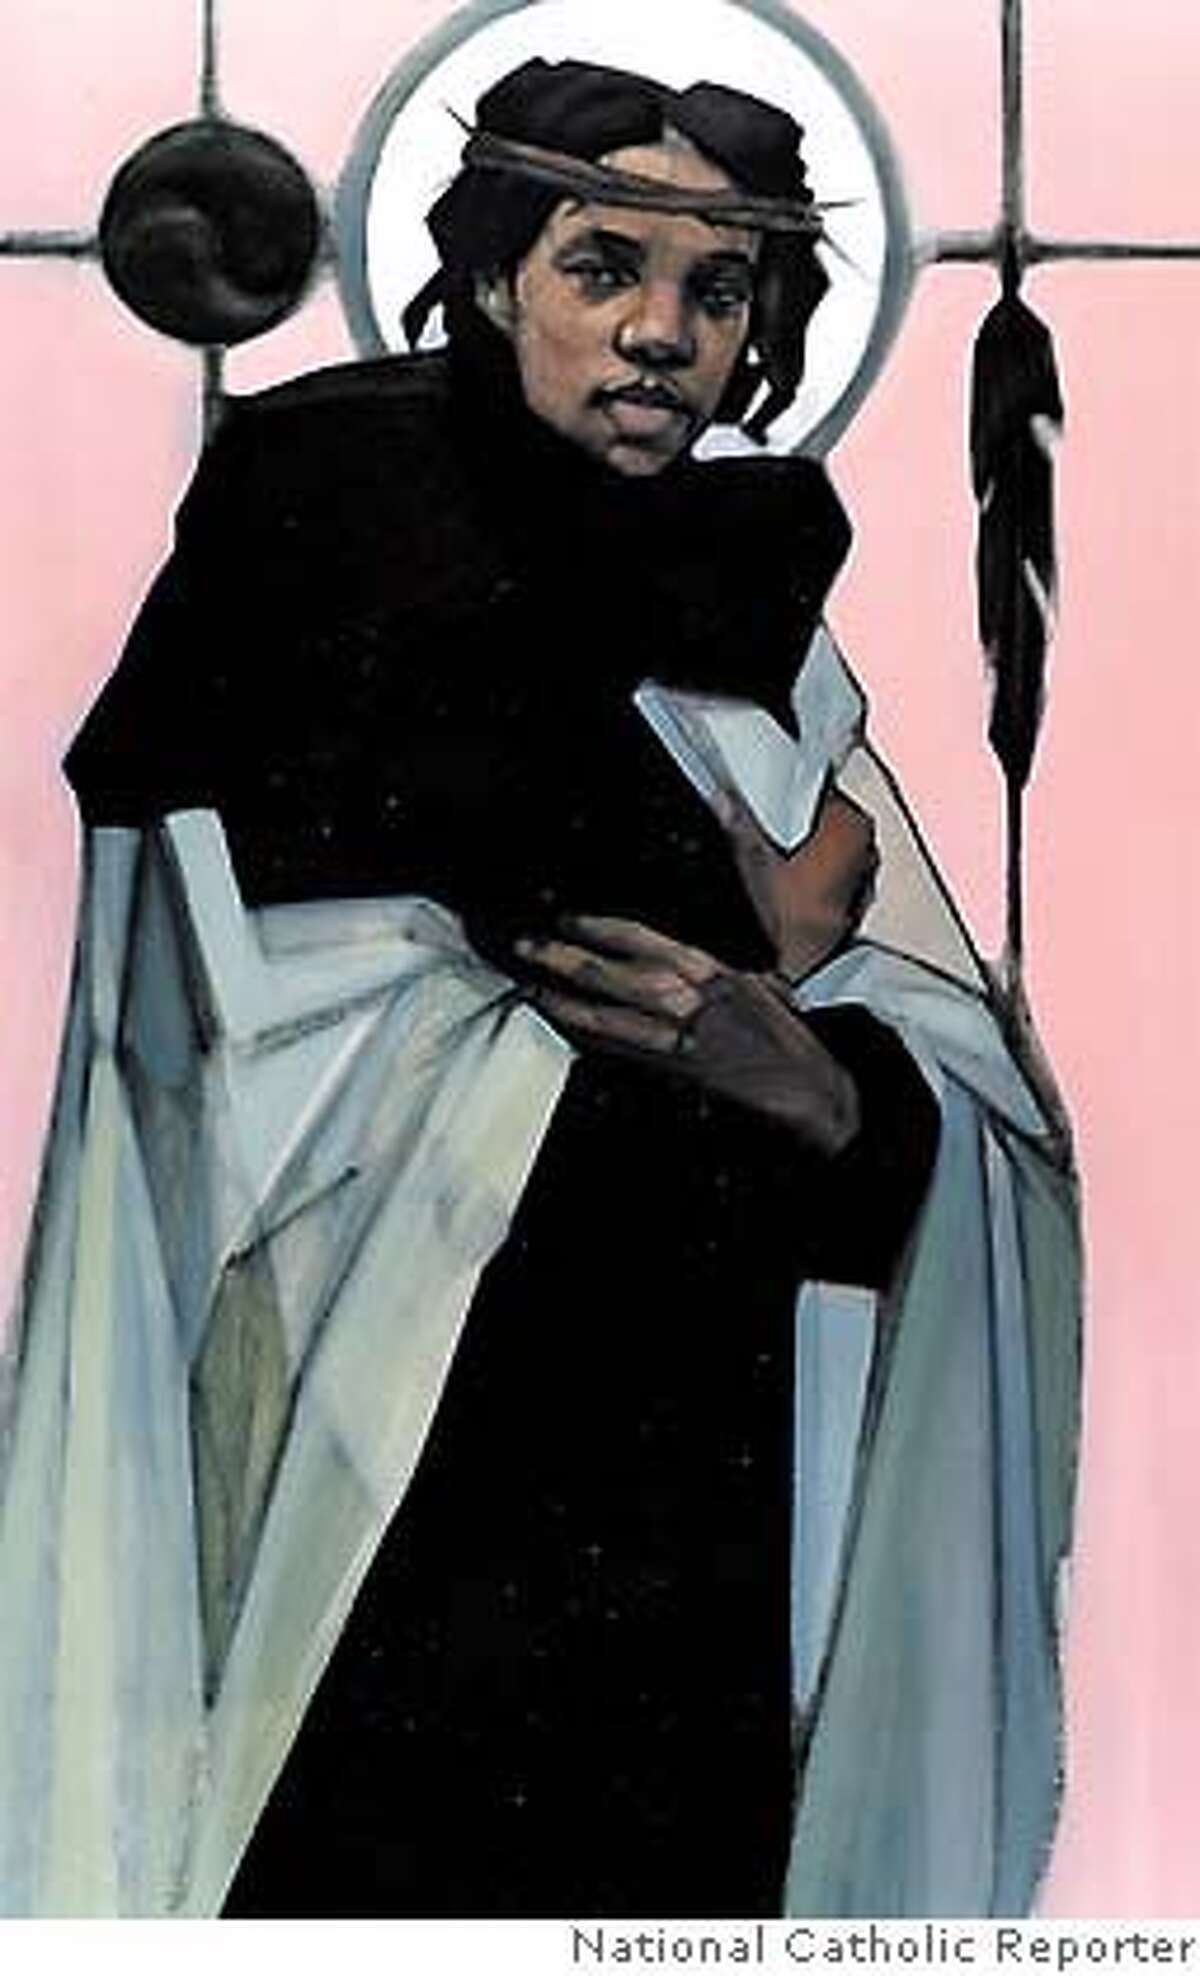 The painting of a black Jesus, shown in this image released Monday, Dec. 13, 1999, has been selected by a Catholic magazine as winner of its global art contest aimed at updating the image of Christ for the new millennium. The painting ``Jesus of the People,'' was selected from nearly 1,700 entries for the cover of a special millennium issue being published this week by the National Catholic Reporter, an independent newsweekly. (AP Photo/National Catholic Reporter) CAT